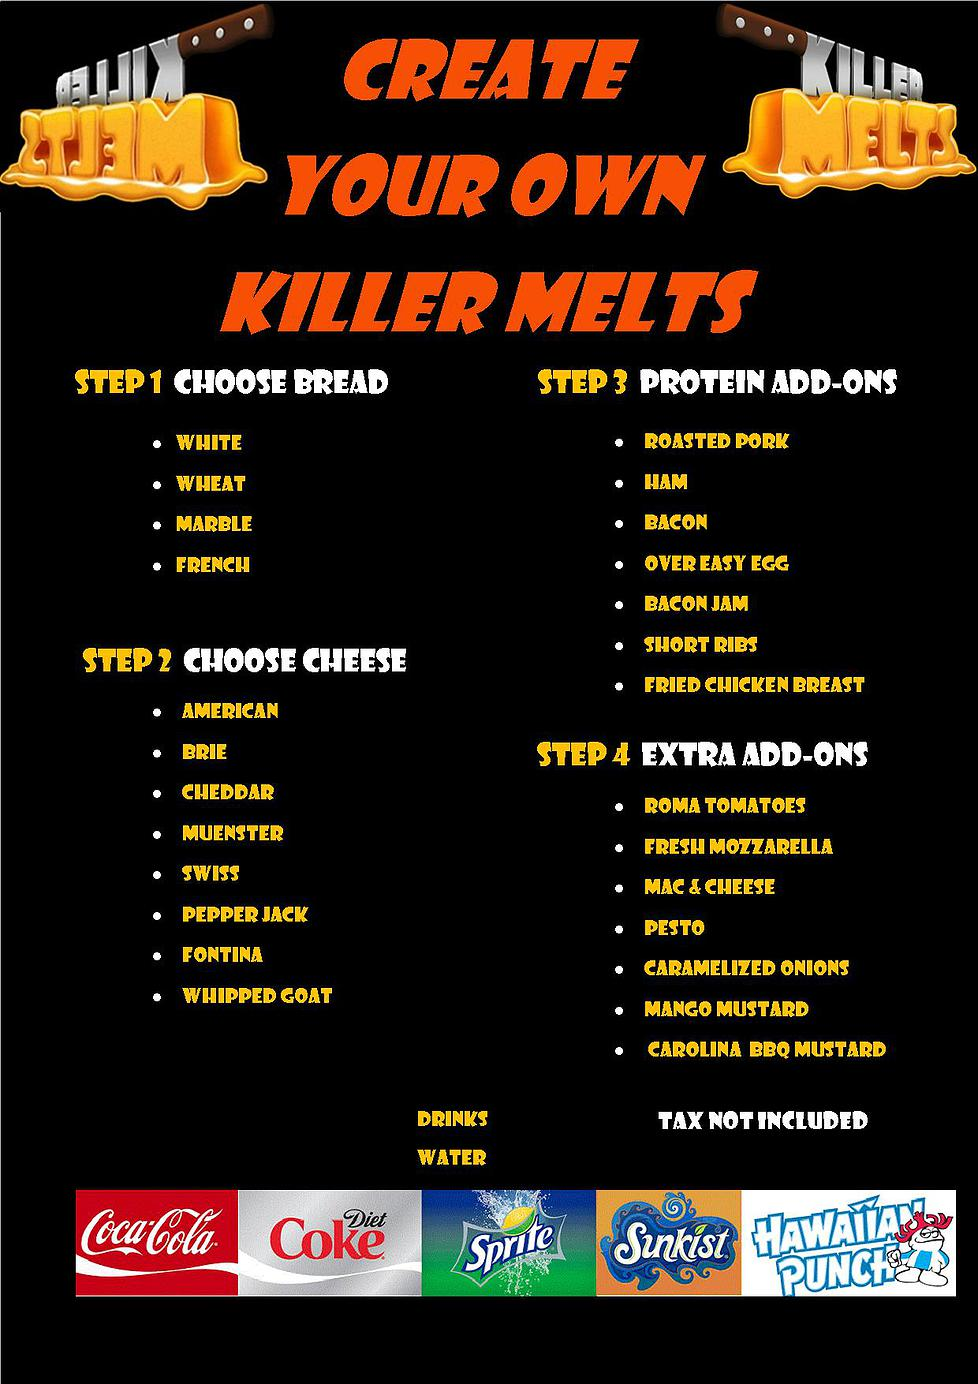 Killer melts food truck dade broward palm beach jeff for Kitchen 88 food truck utah menu